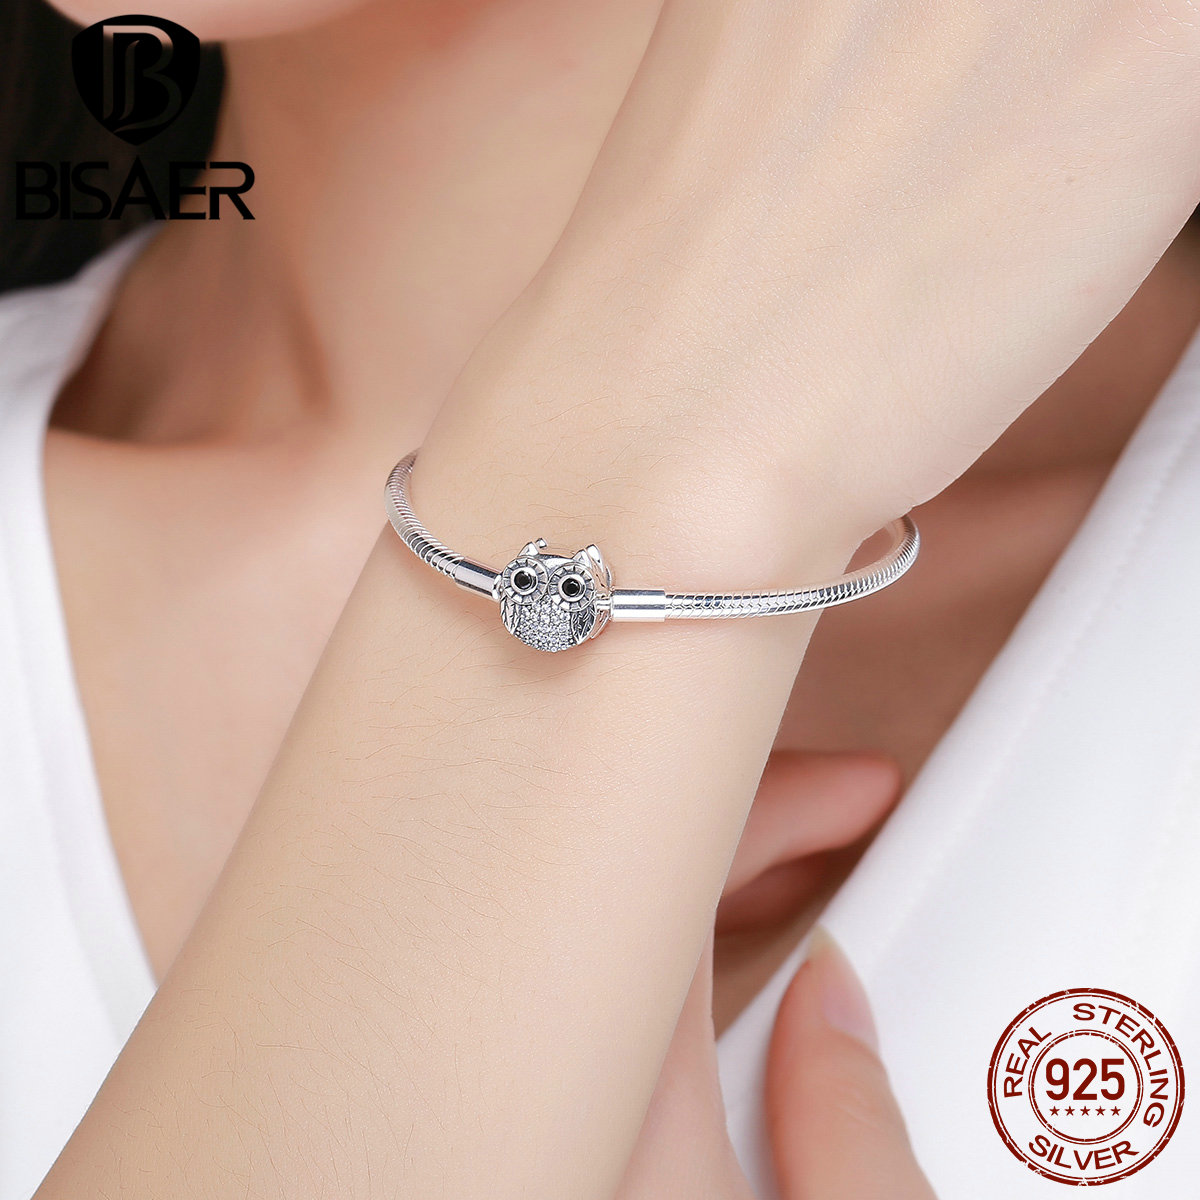 Brand New 100% 925 Sterling Silver Animal Cute Owl Basic Snake Chain Charm Bracelets for Women Sterling Silver Bracelet Jewelry 925 sterling silver expandable bracelet for women vintage lotus charm flowers engraved bracelets